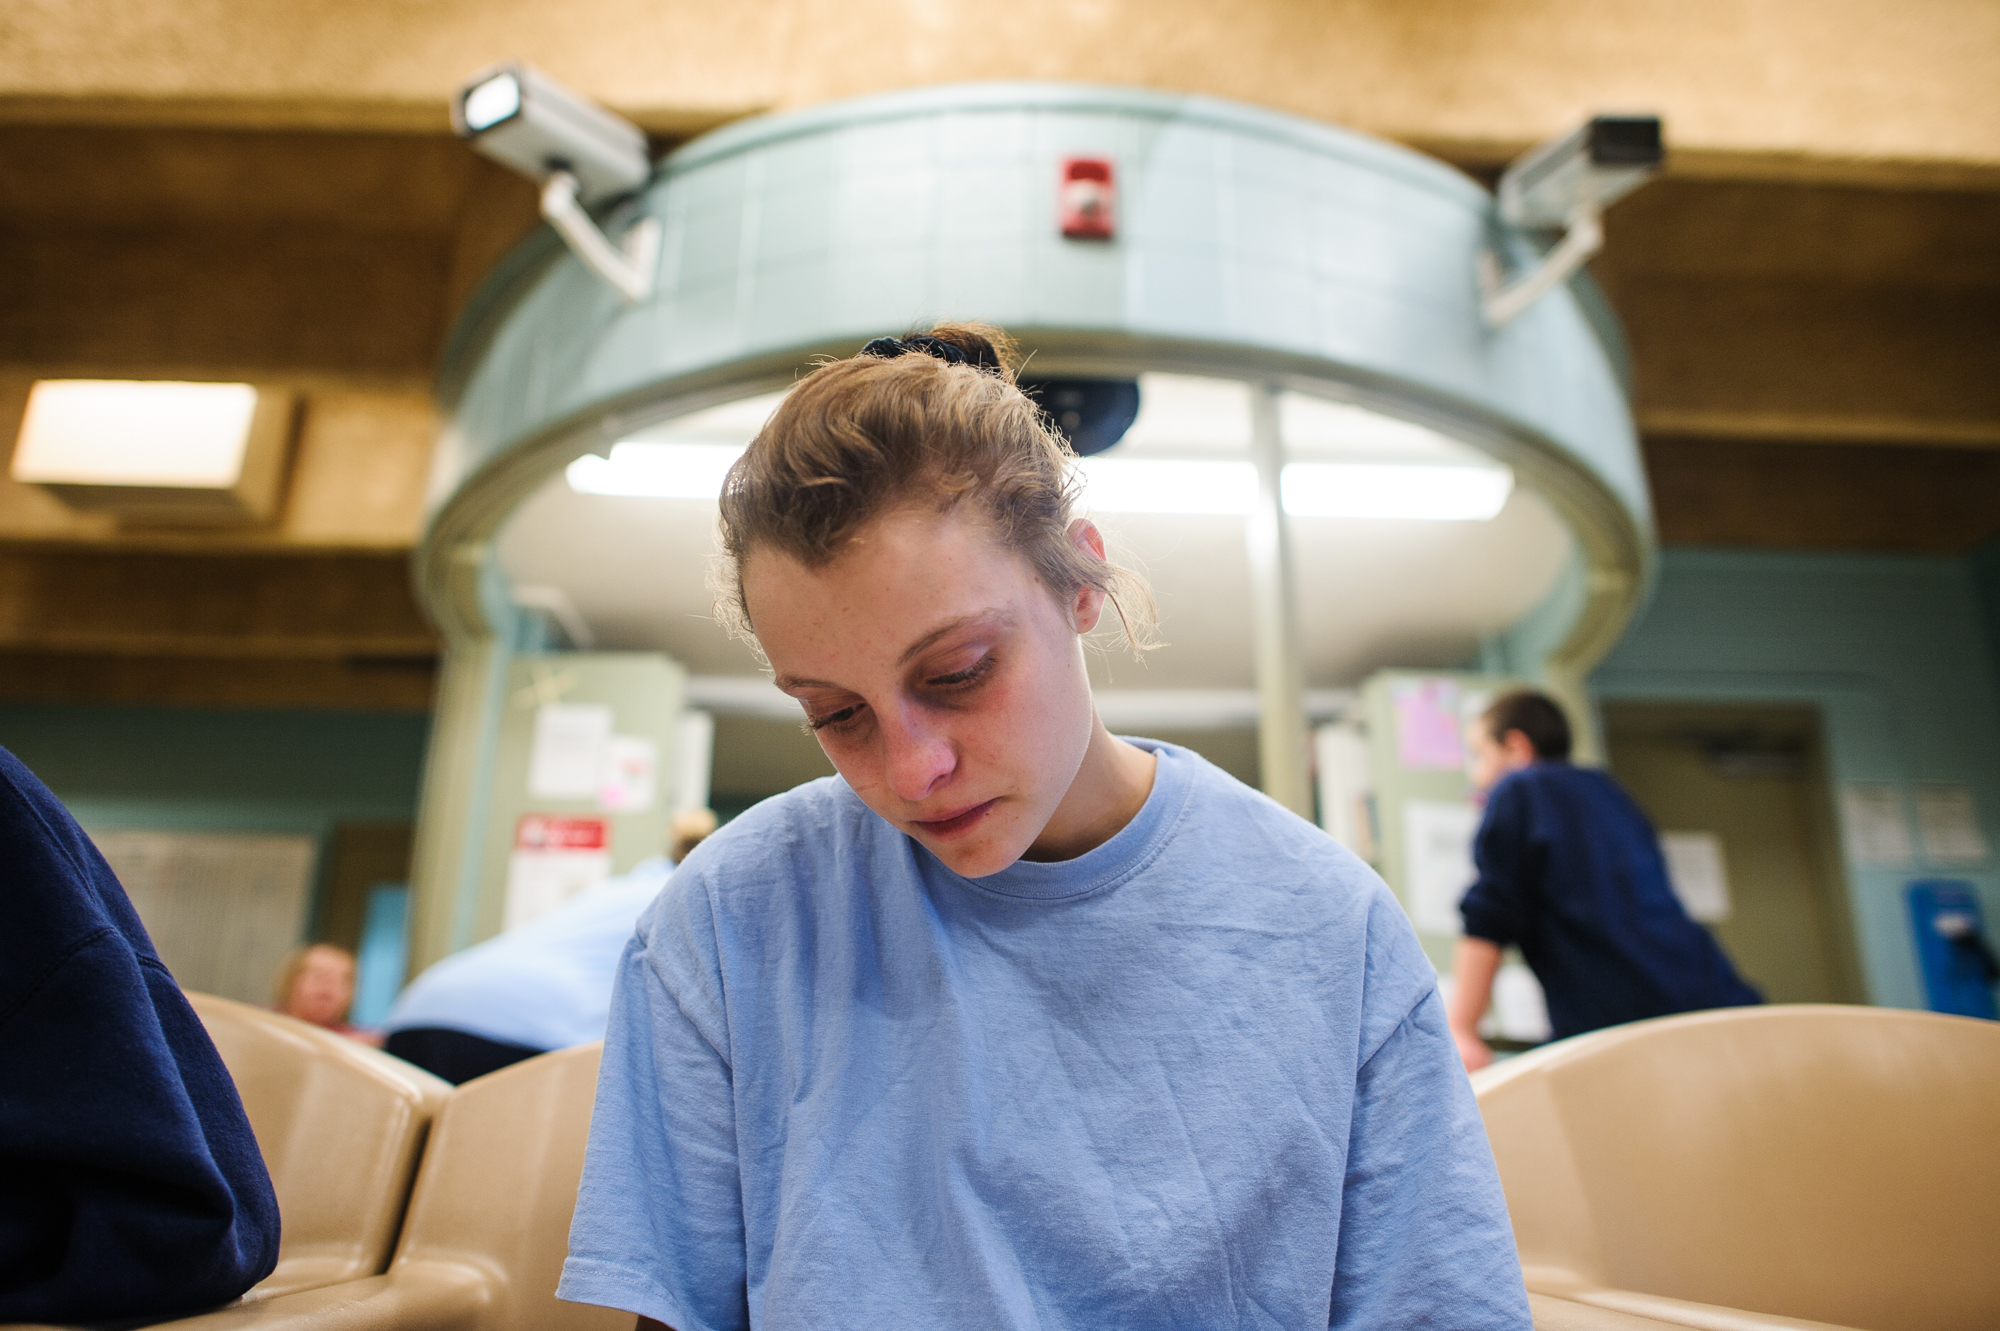 Alysia, age 16, sits in the communal area and draws in the girls' unit at the juvenile detention center.